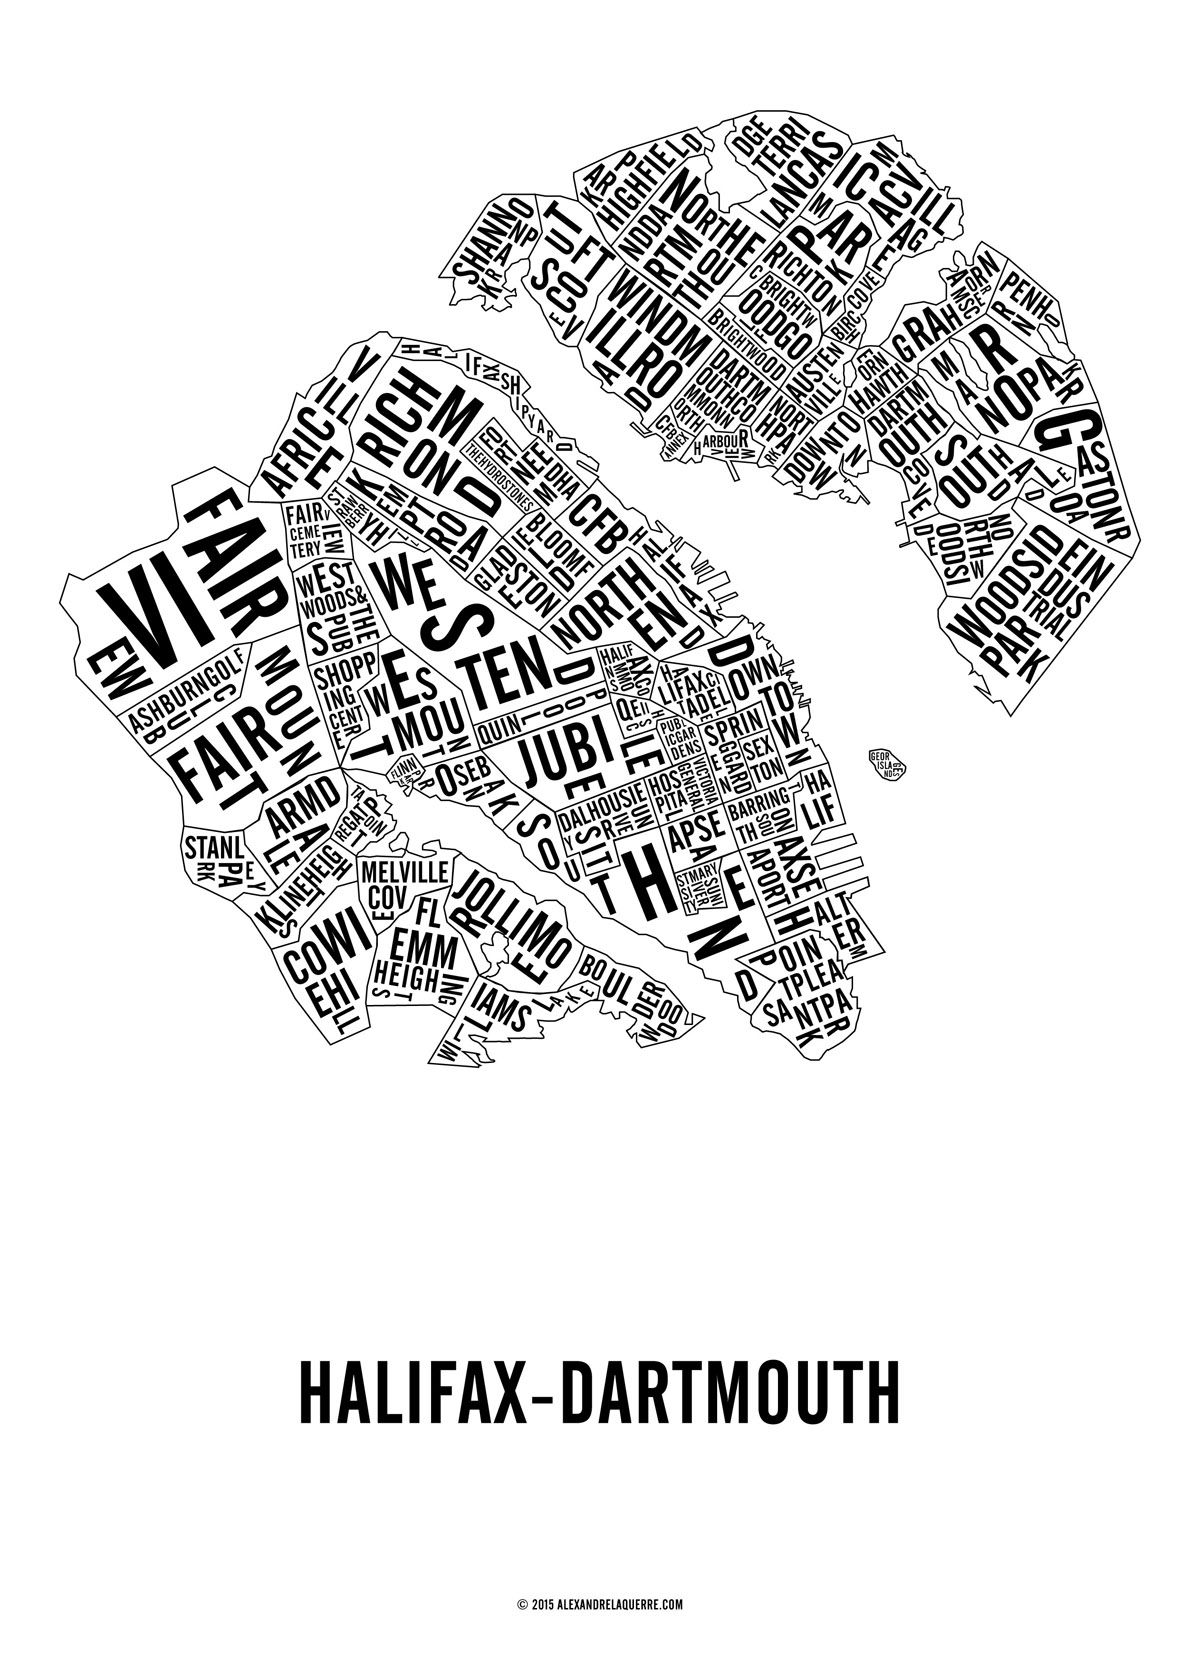 Halifax-Dartmouth Neighbourhoods map.